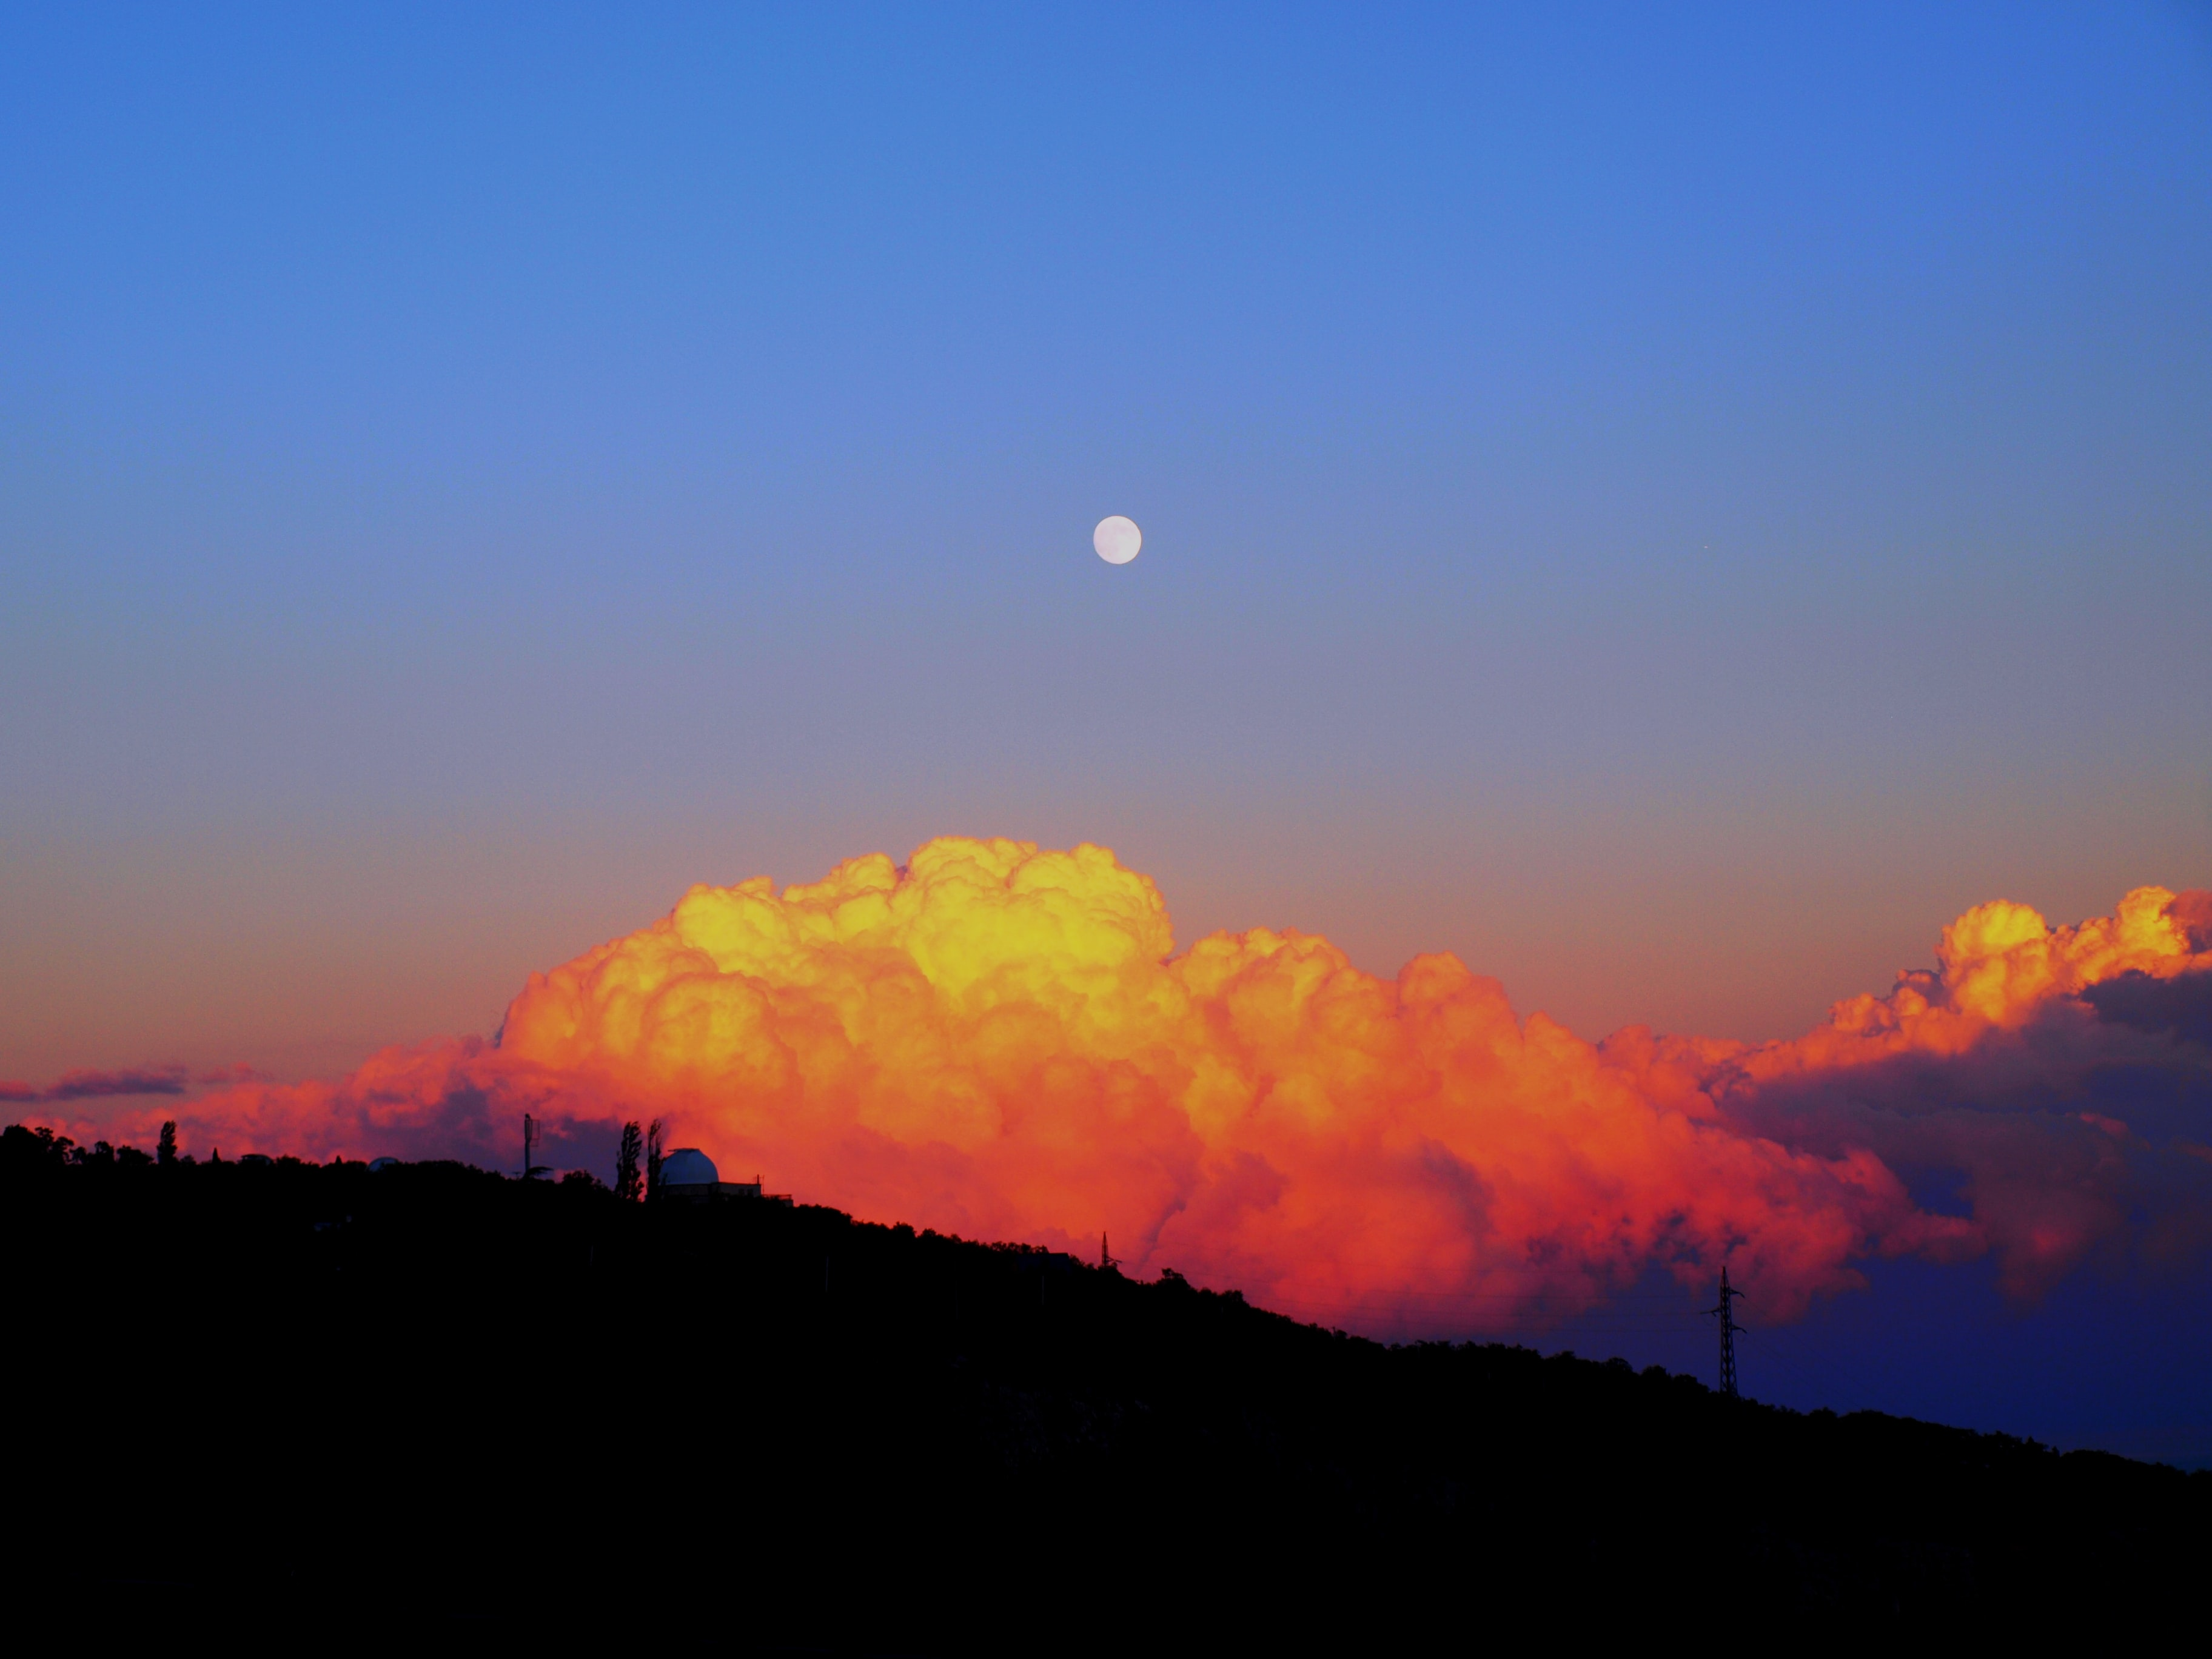 Full moon rises over puffy orange clouds during sunset in Крым